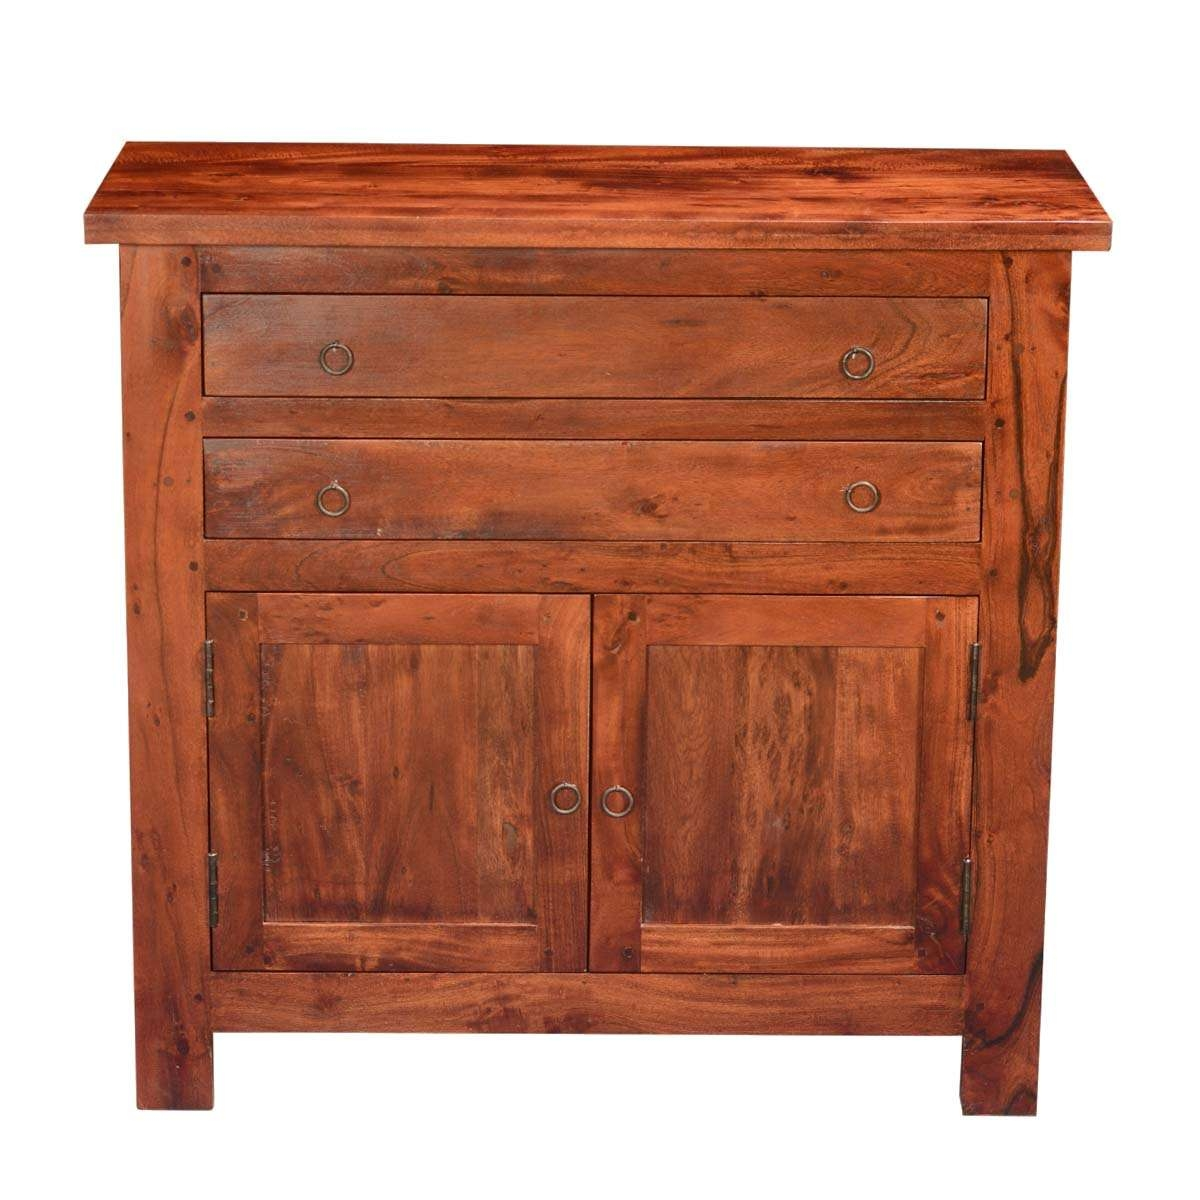 Classic Acacia Wood Buffet Sideboard Cabinet Pertaining To Mission Sideboards (View 8 of 20)